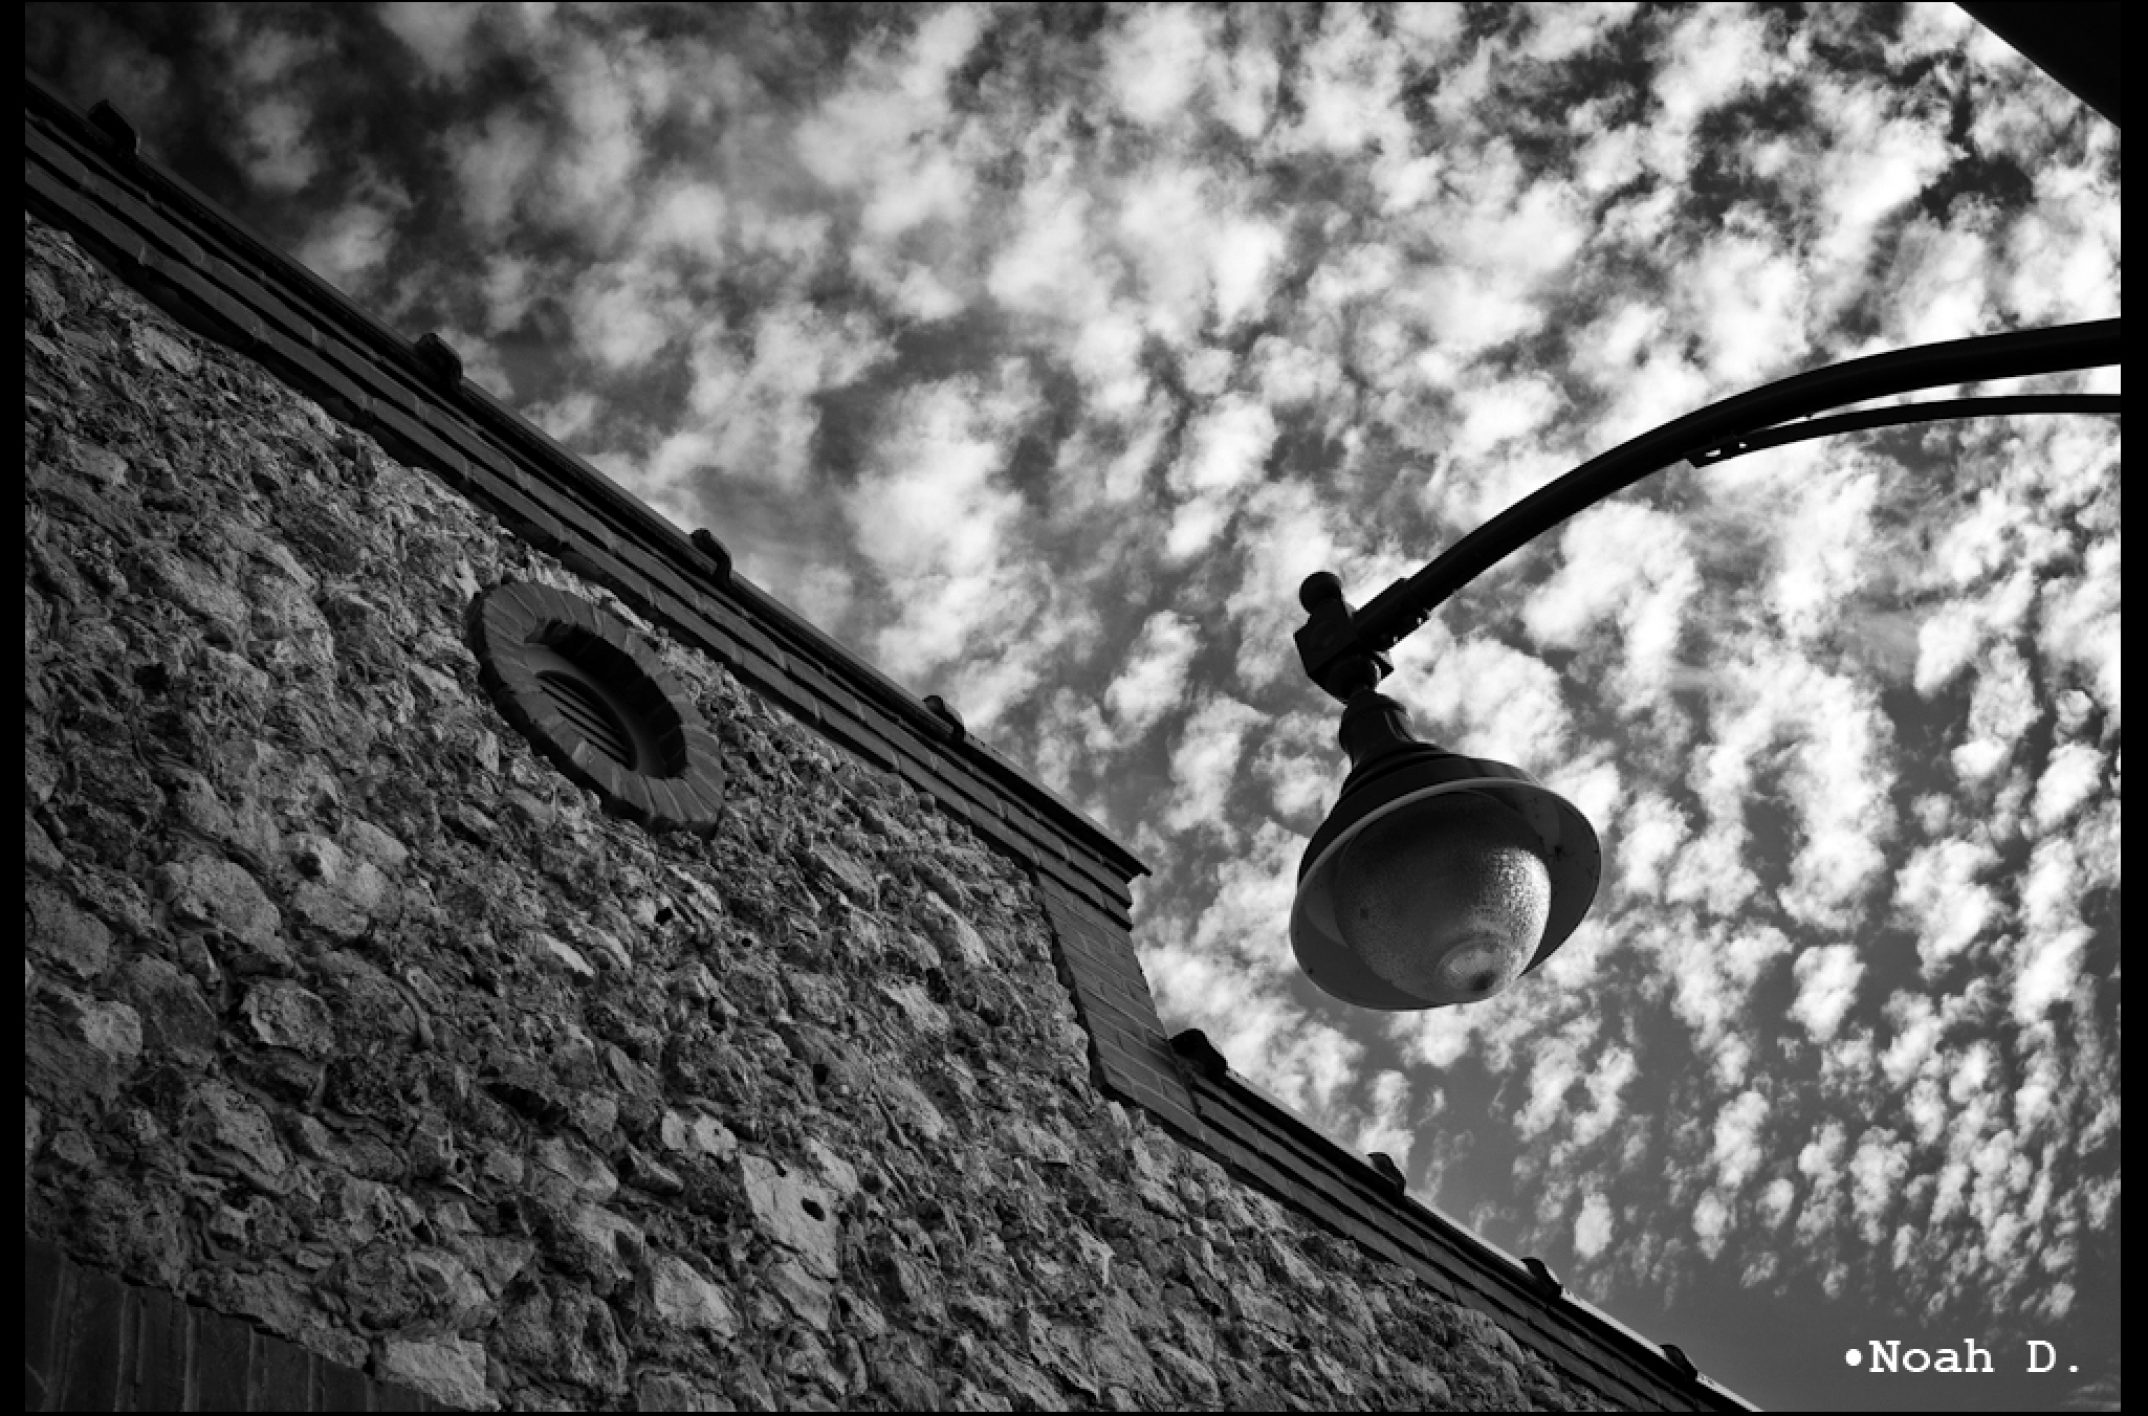 From one street lamp to another…